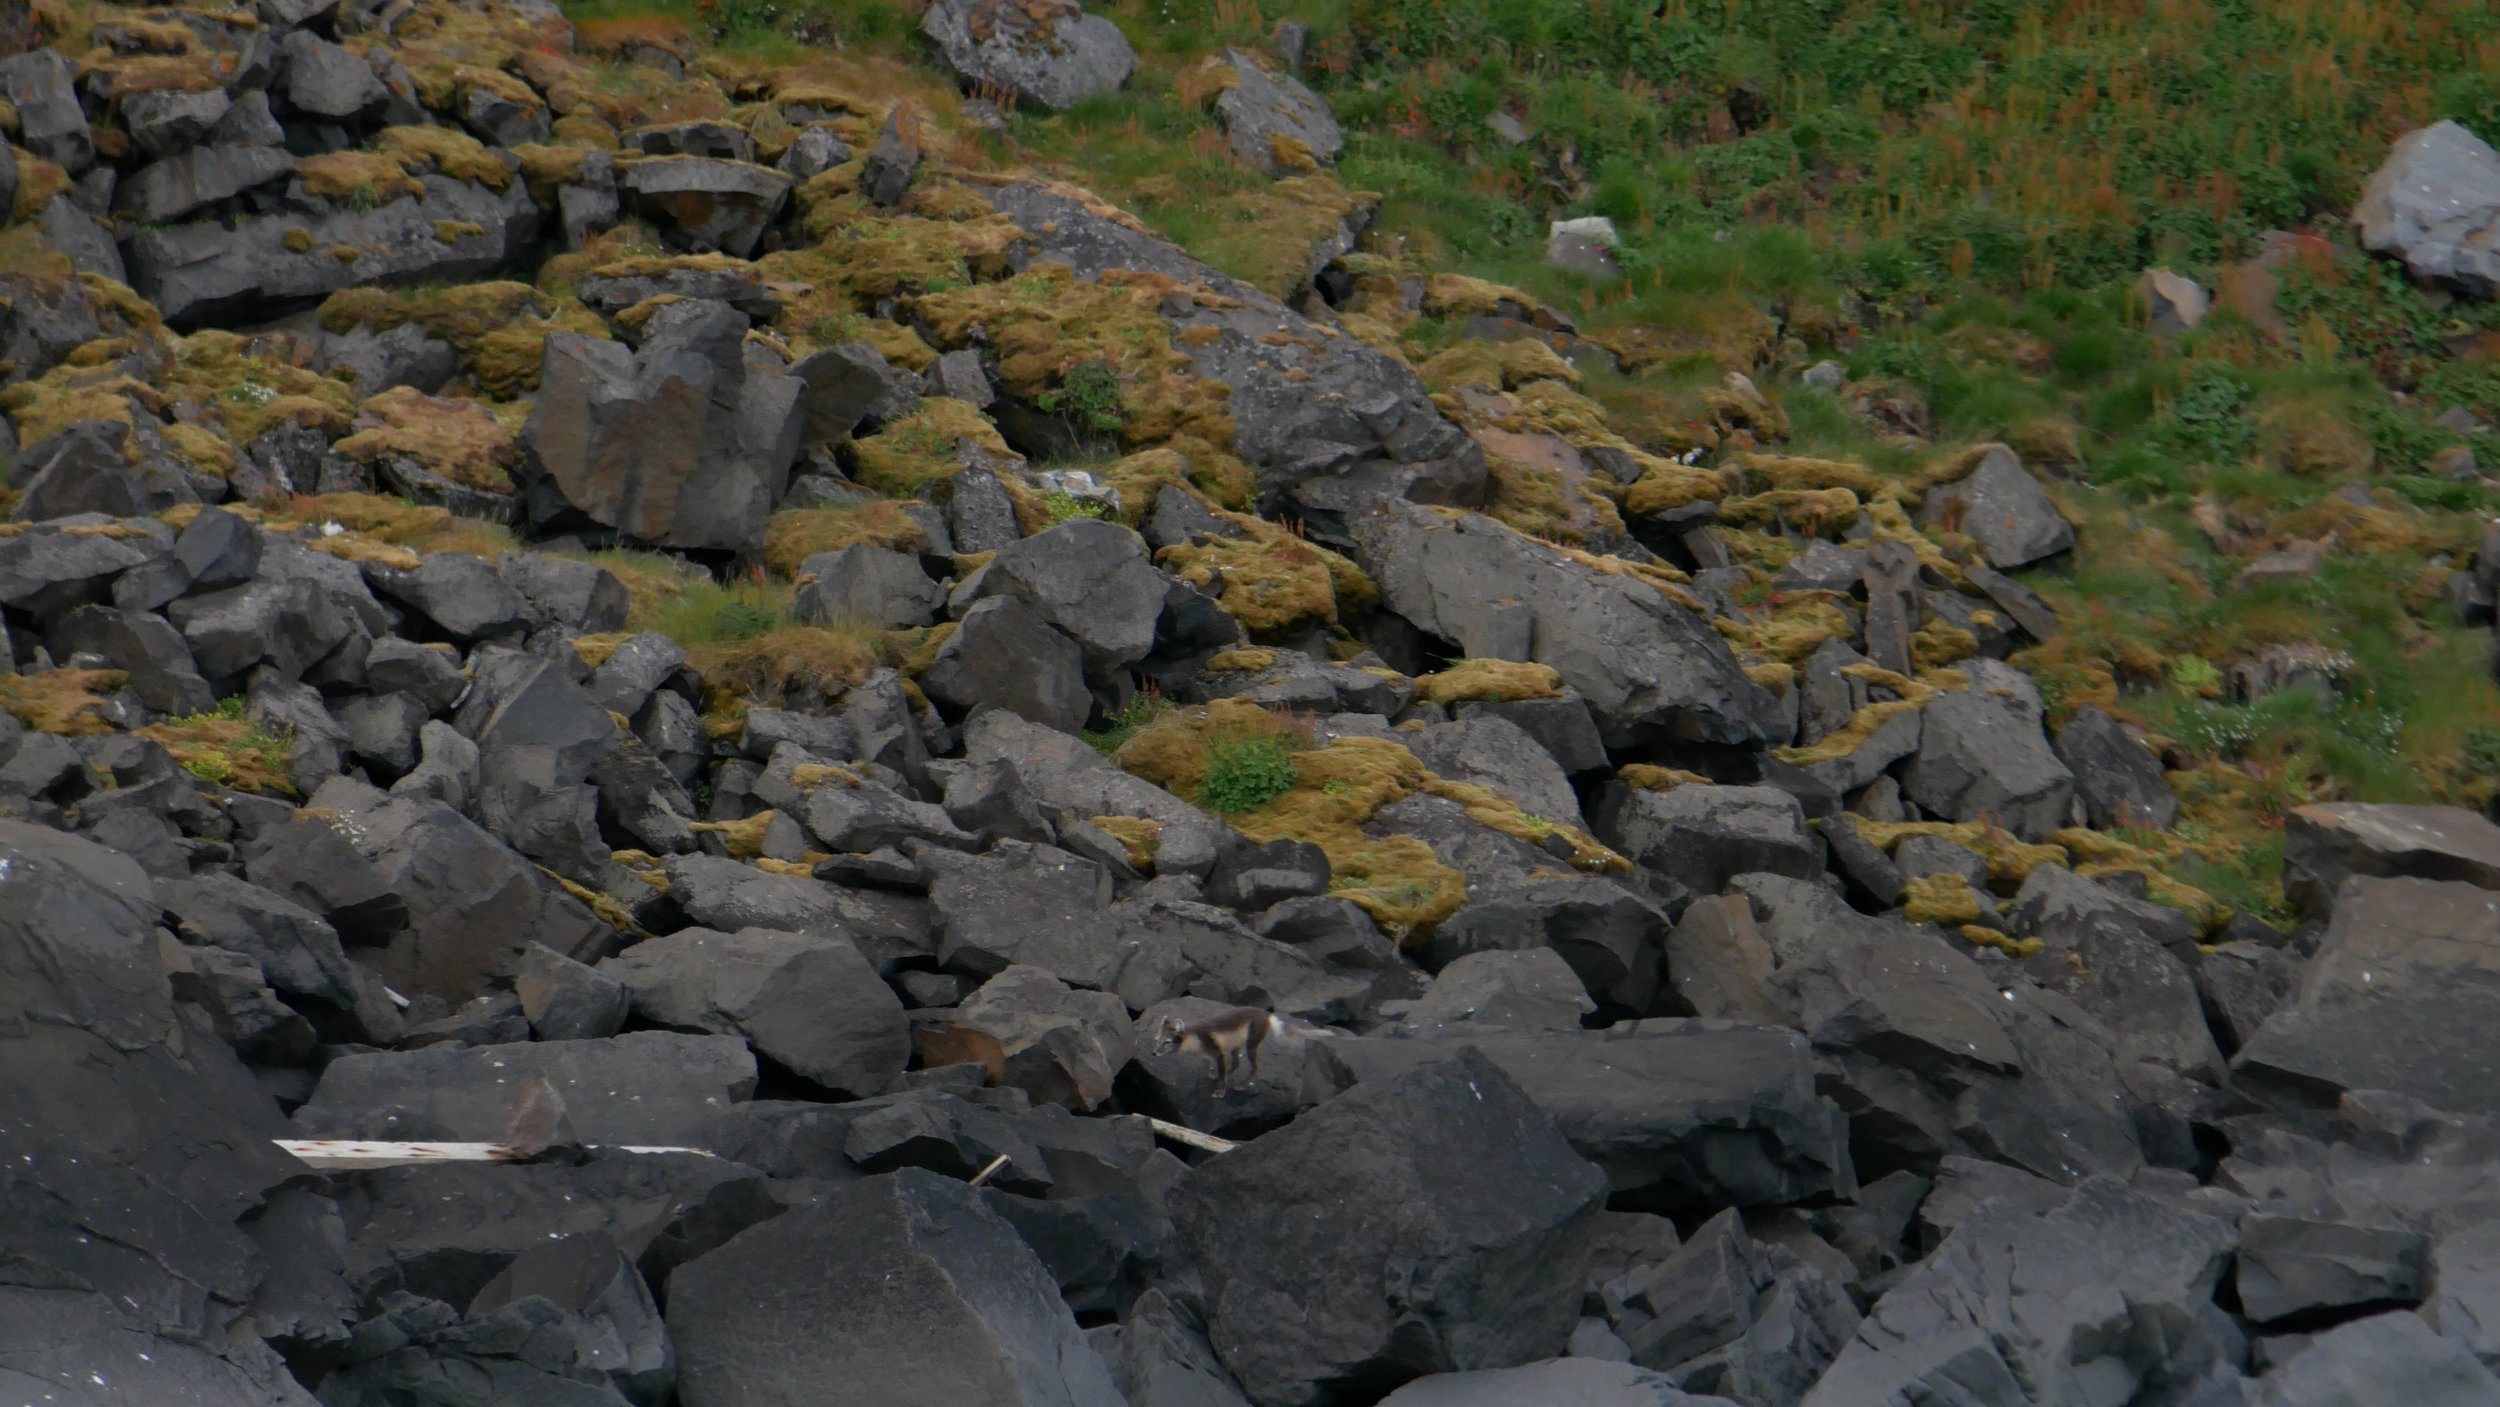 Arctic fox mooching about the bottom of the cliffs